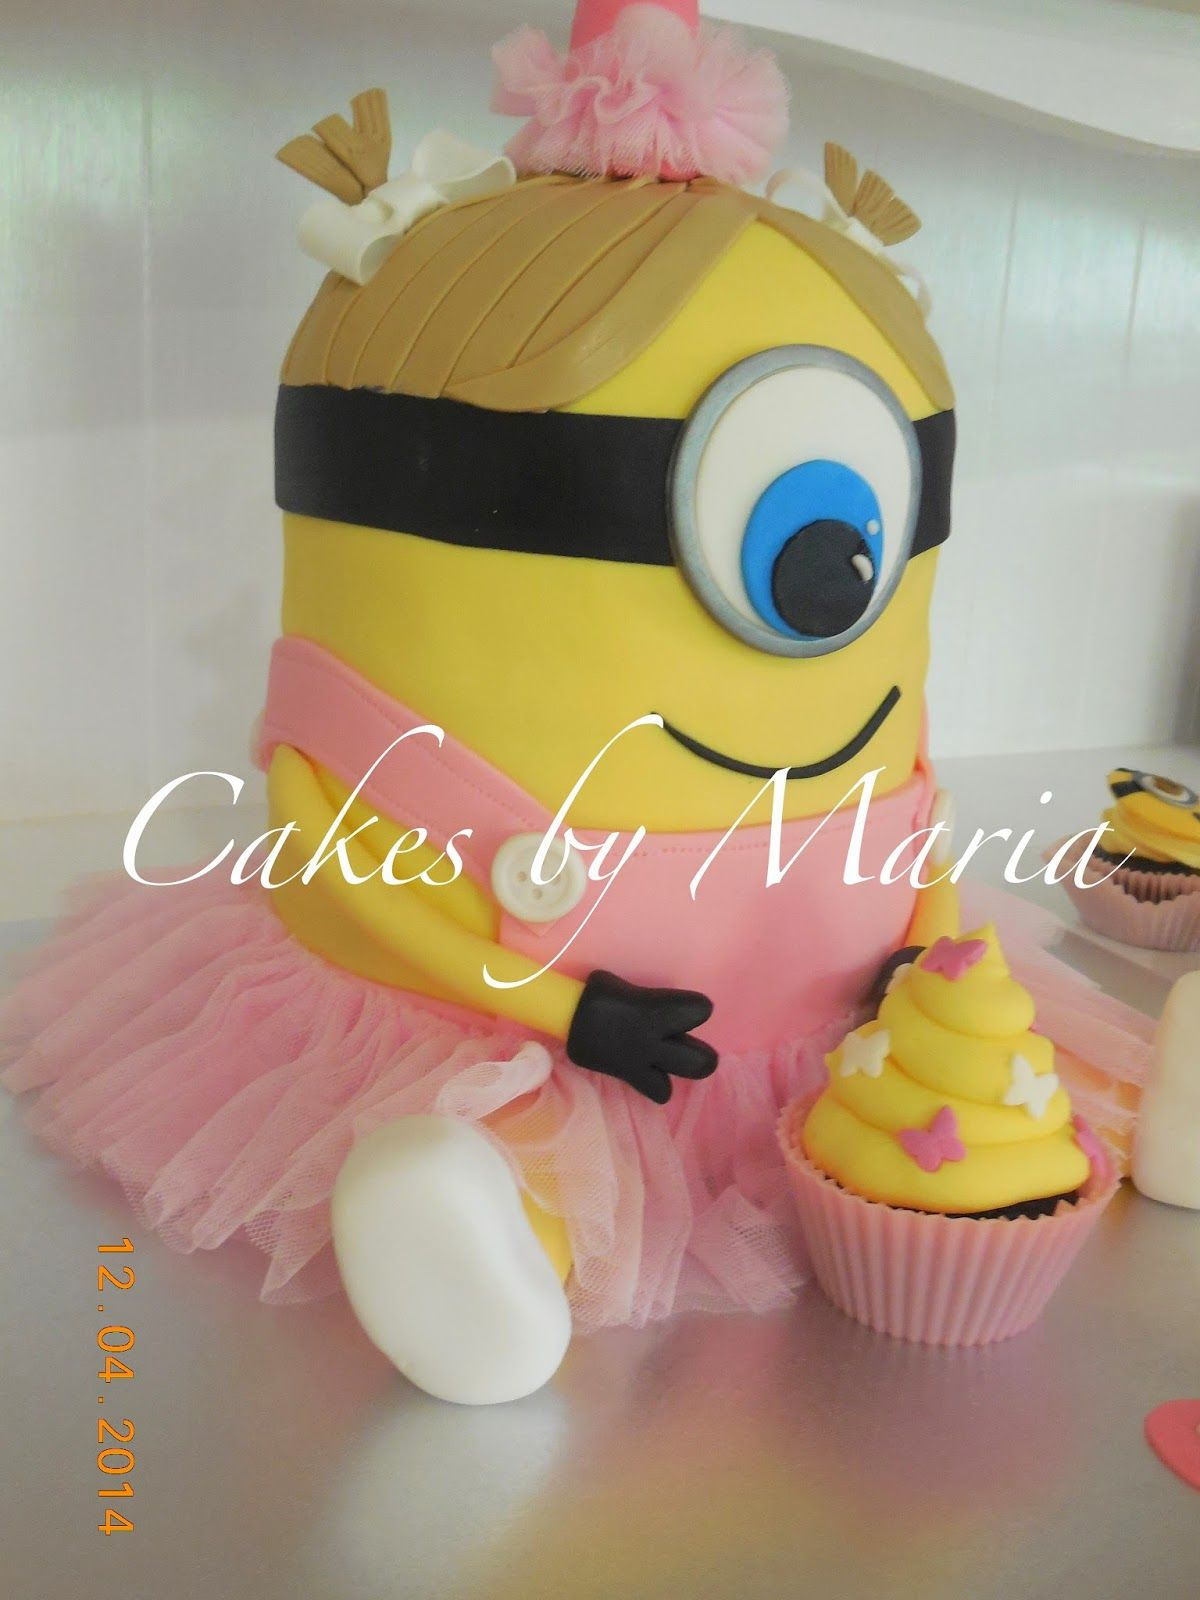 Ballerina minion posted by aussiemum at cake decorating